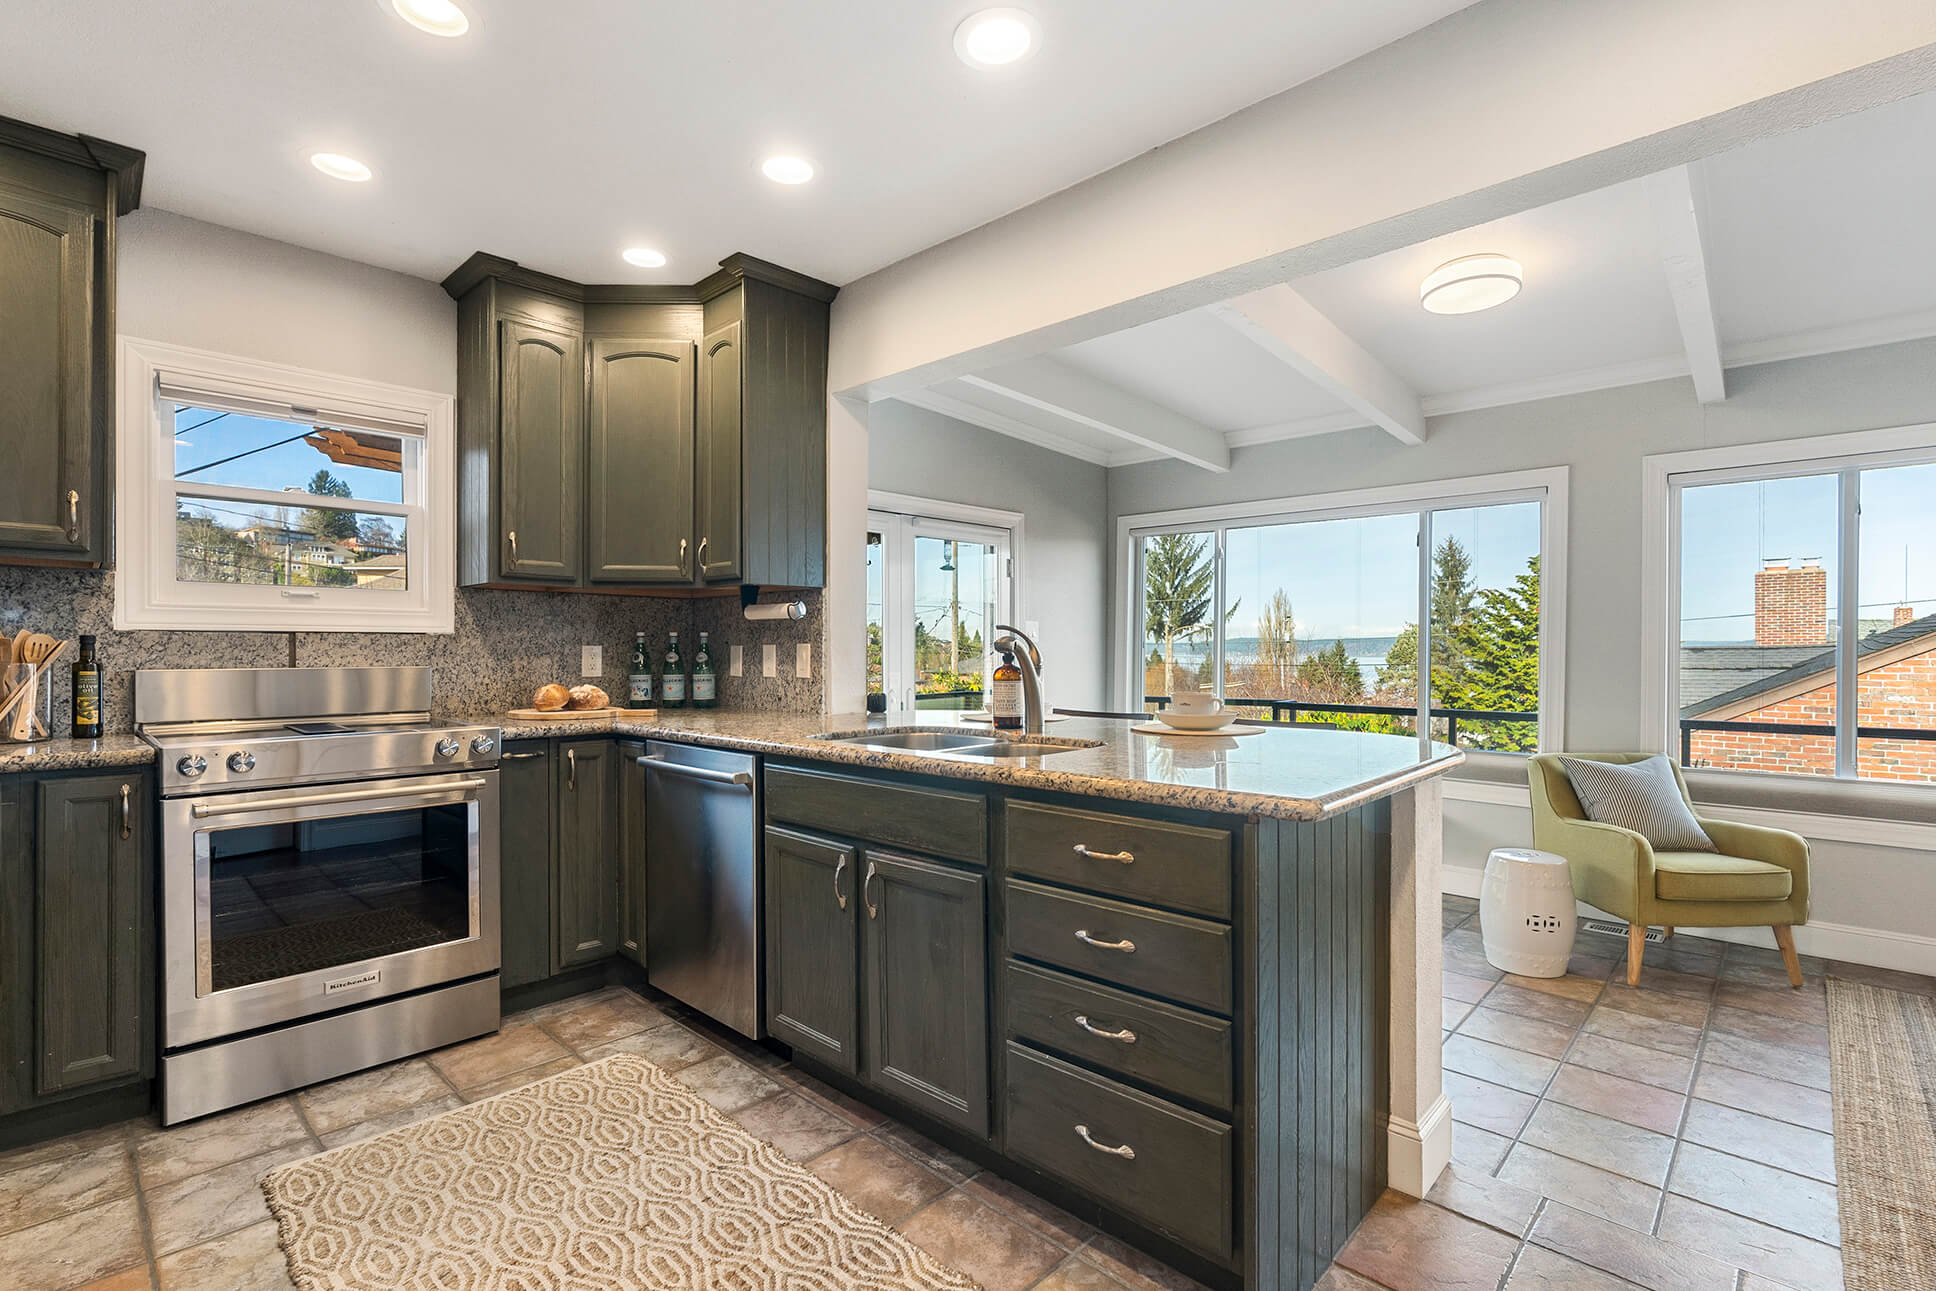 Kitchen offers gentle water views